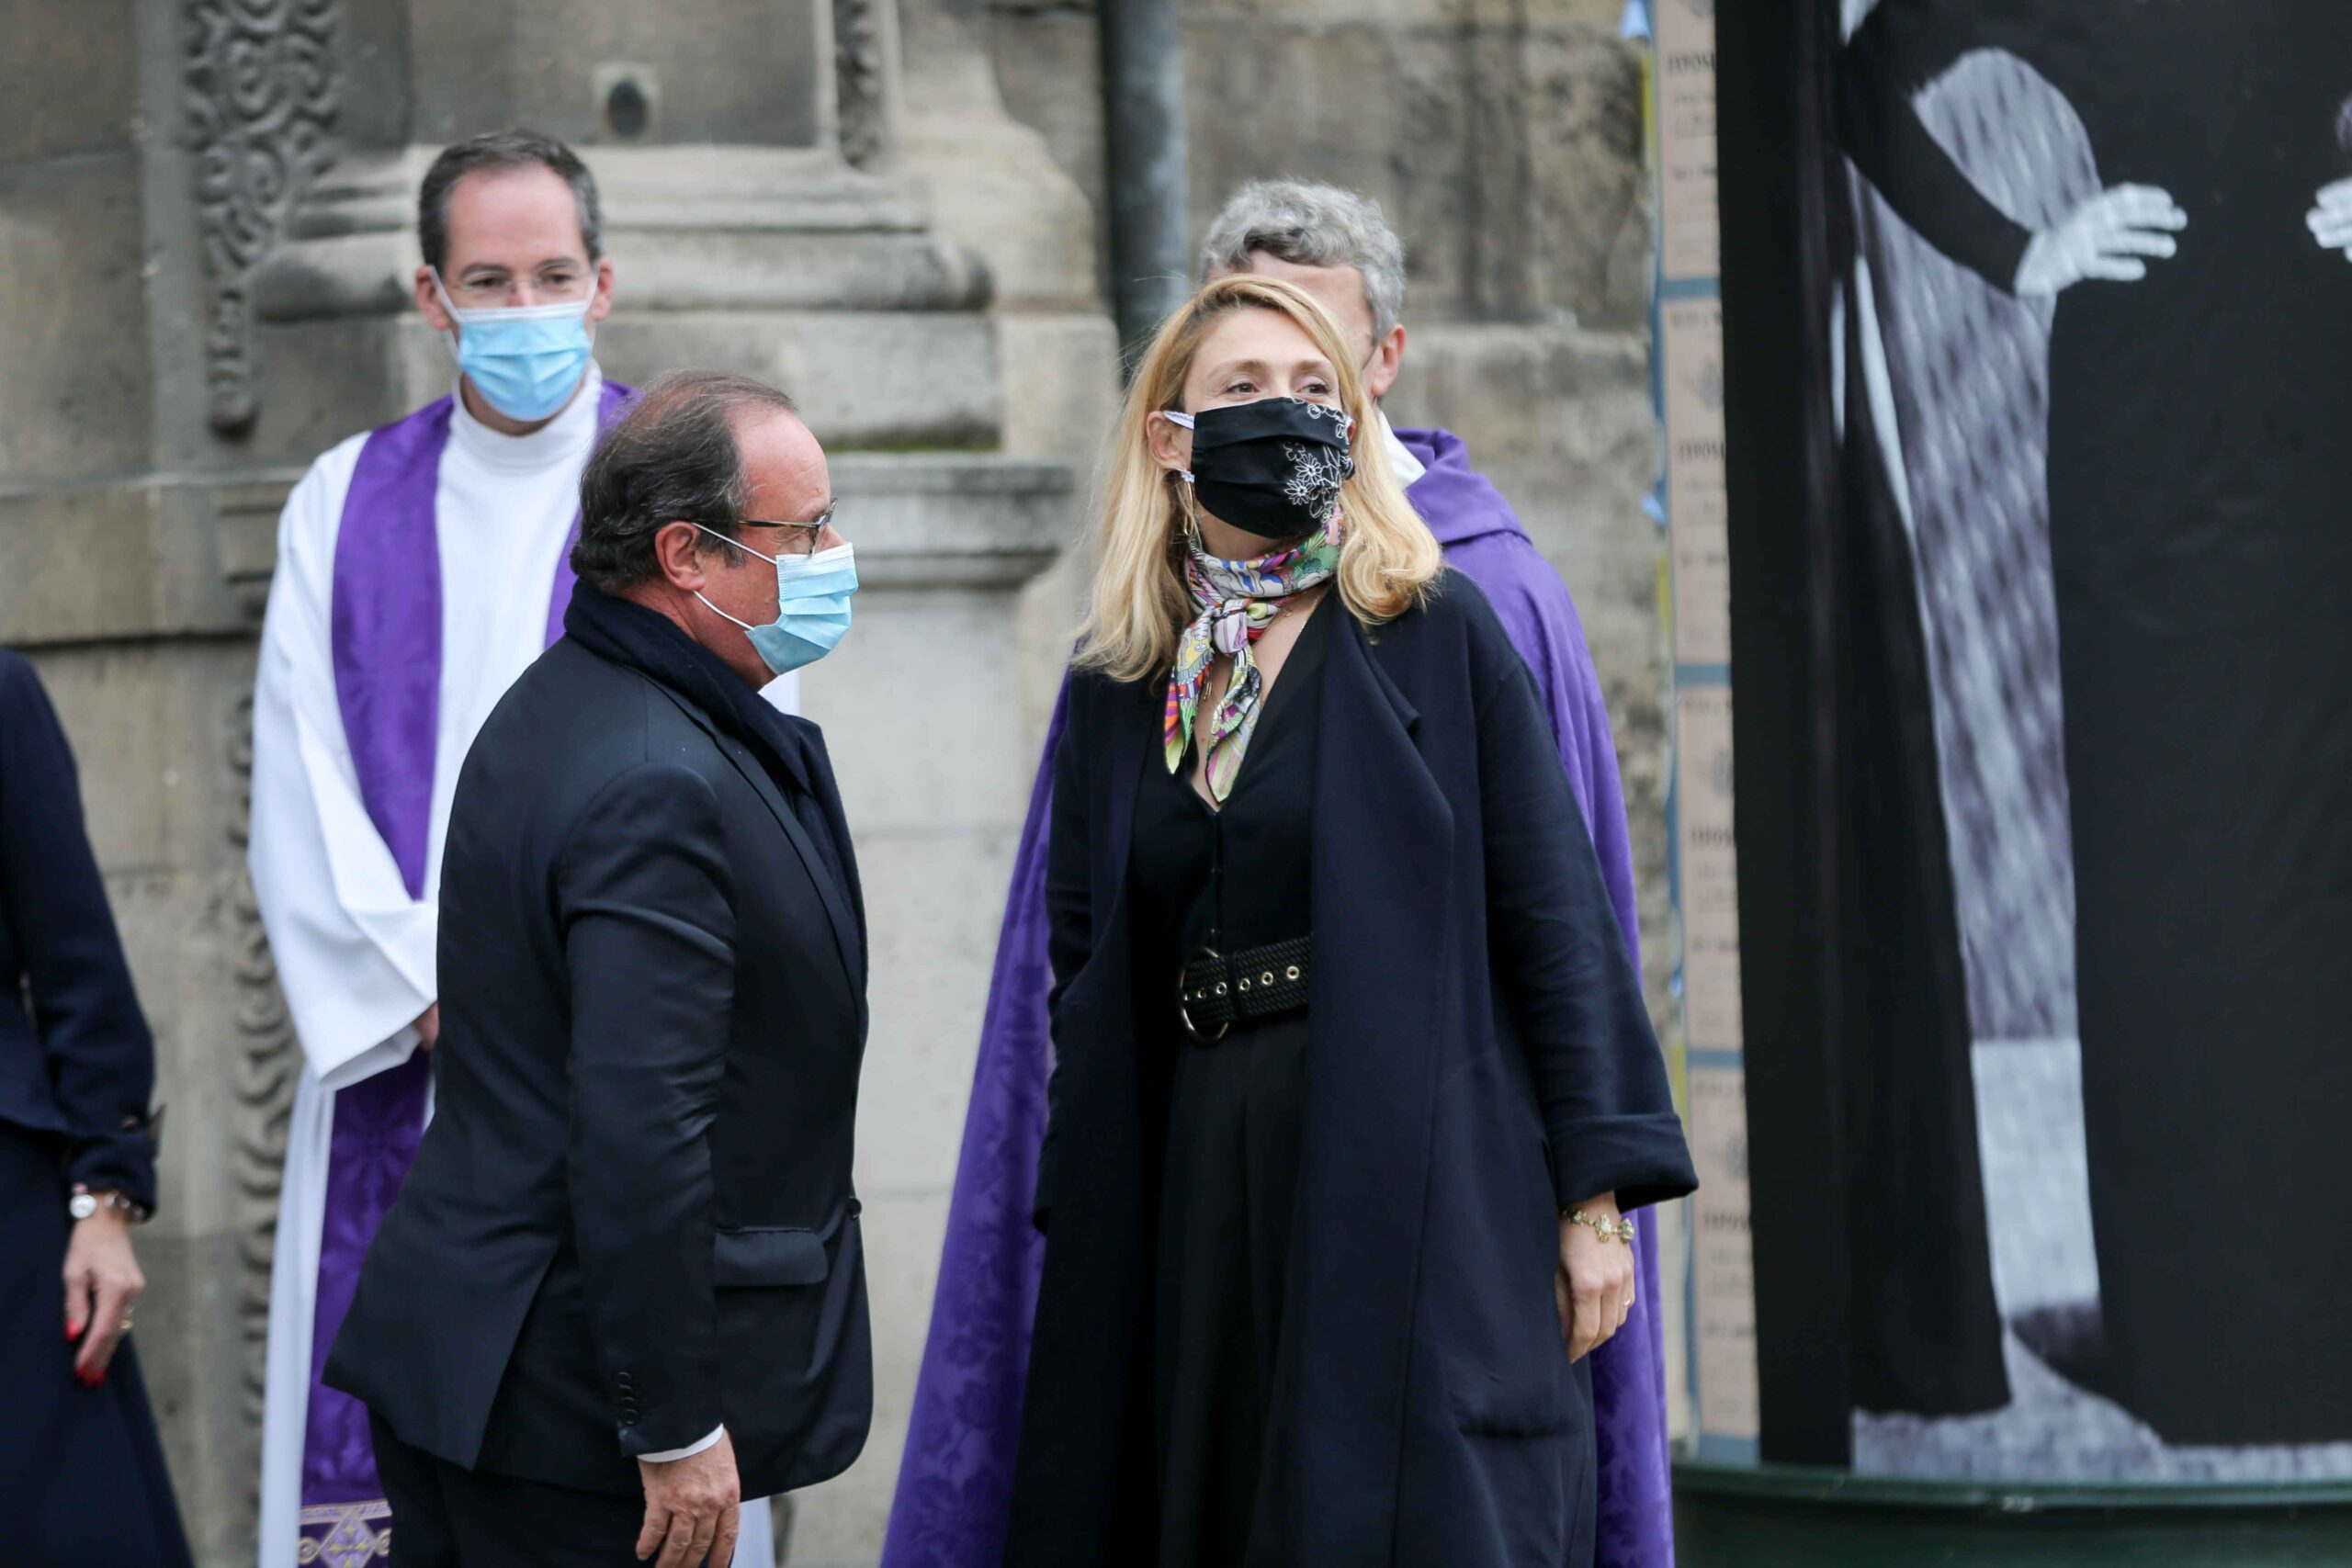 Former French President Francois Hollande (L) and his partner French actress Julie Gayet (R) arrive for the funerals of French singer Juliette Greco, at the Saint-Germain-des-Pres church in Paris, on October 5, 2020. Legendary French singer Juliette Greco,